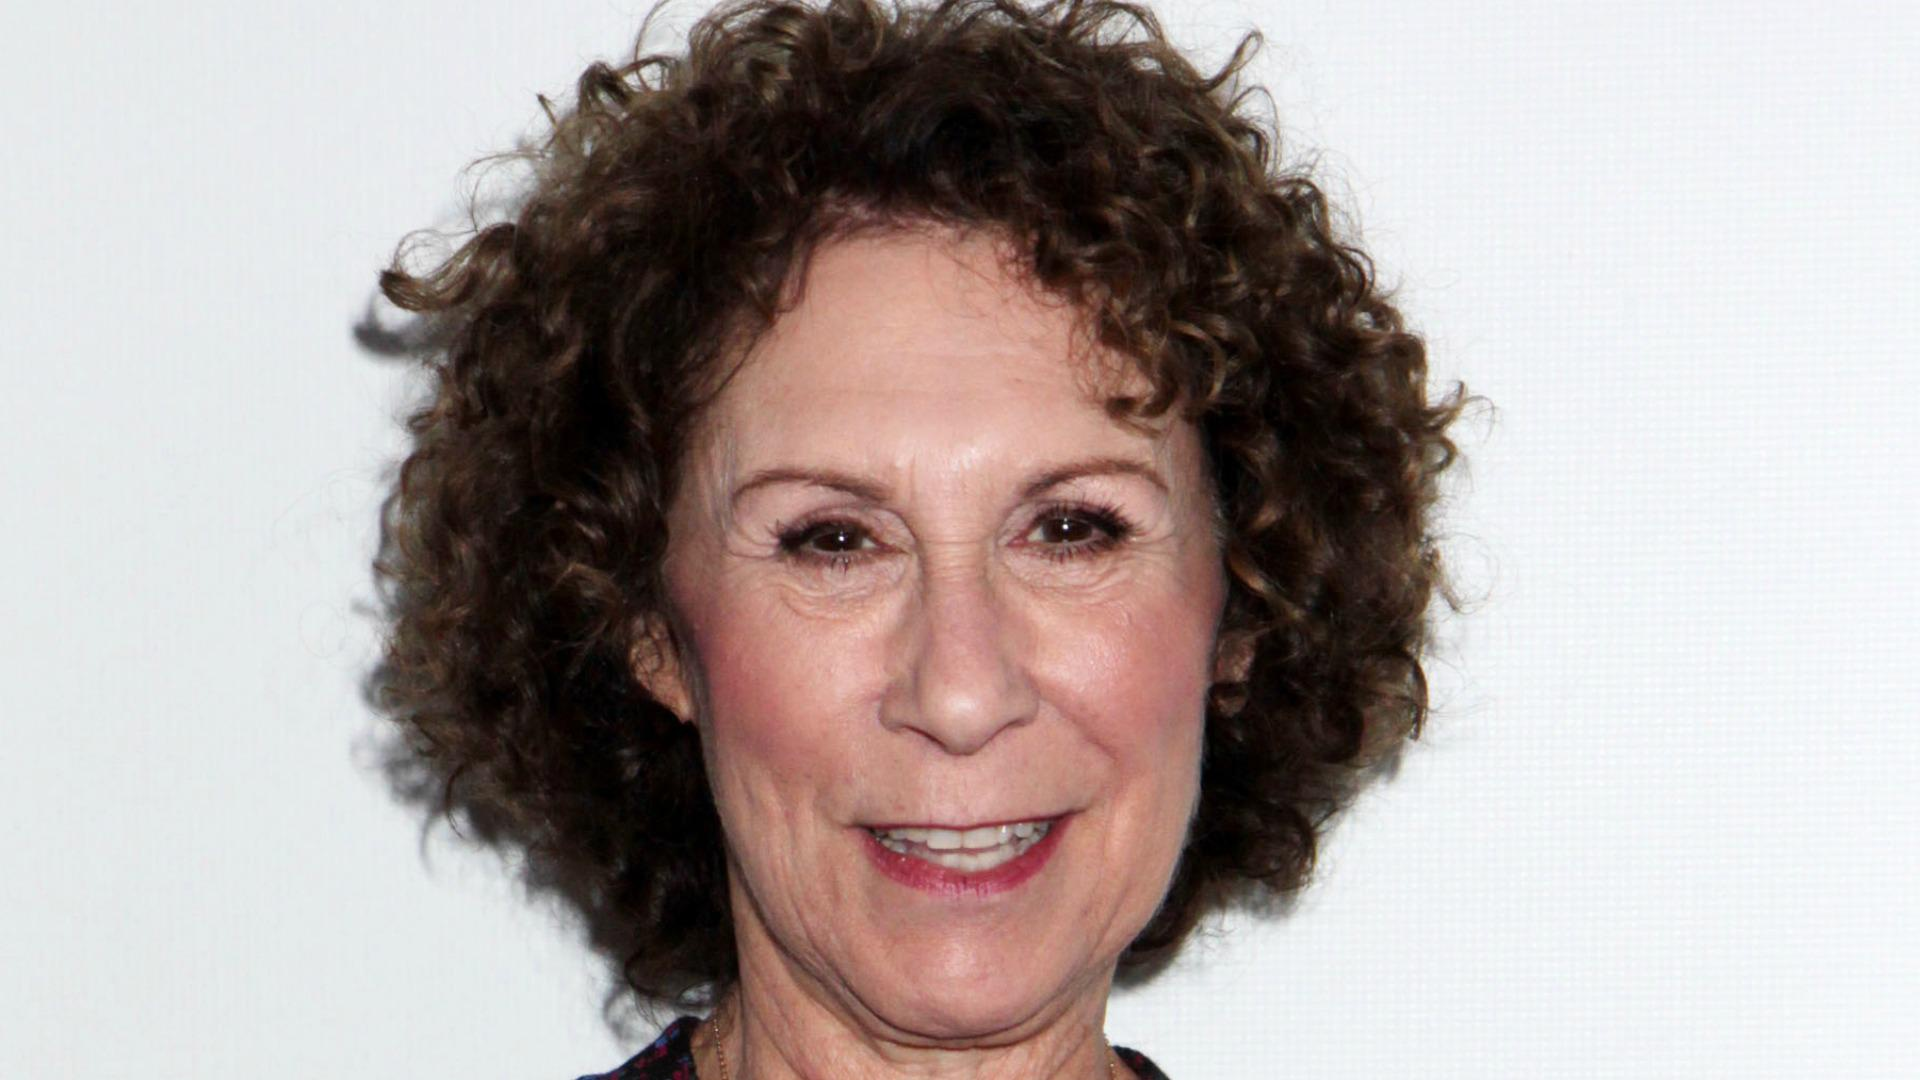 Rhea Perlman brings her trademark sass to <em>The Mindy Project</em>